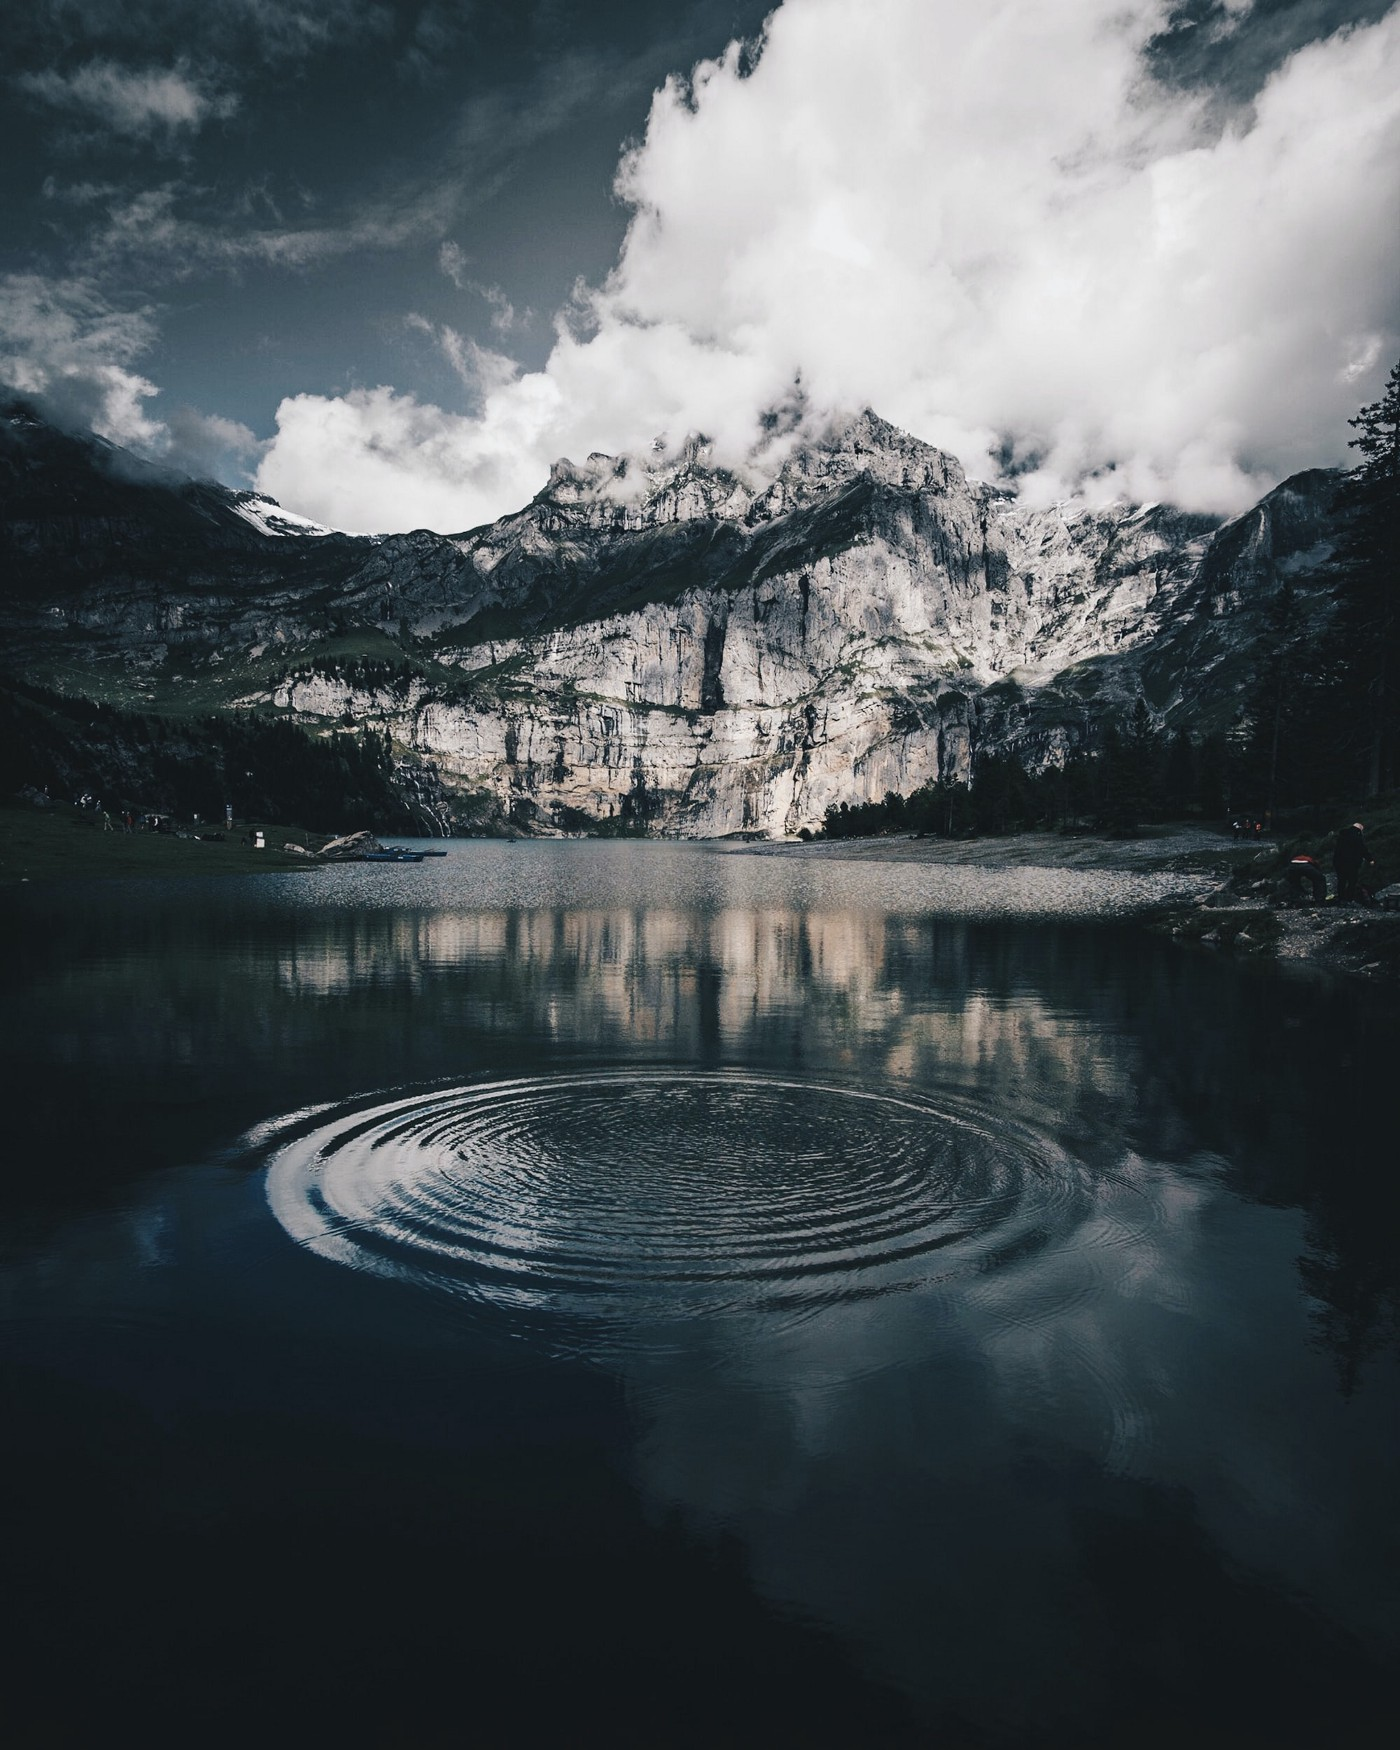 Ripple in a pond on a lake in front of a mountain